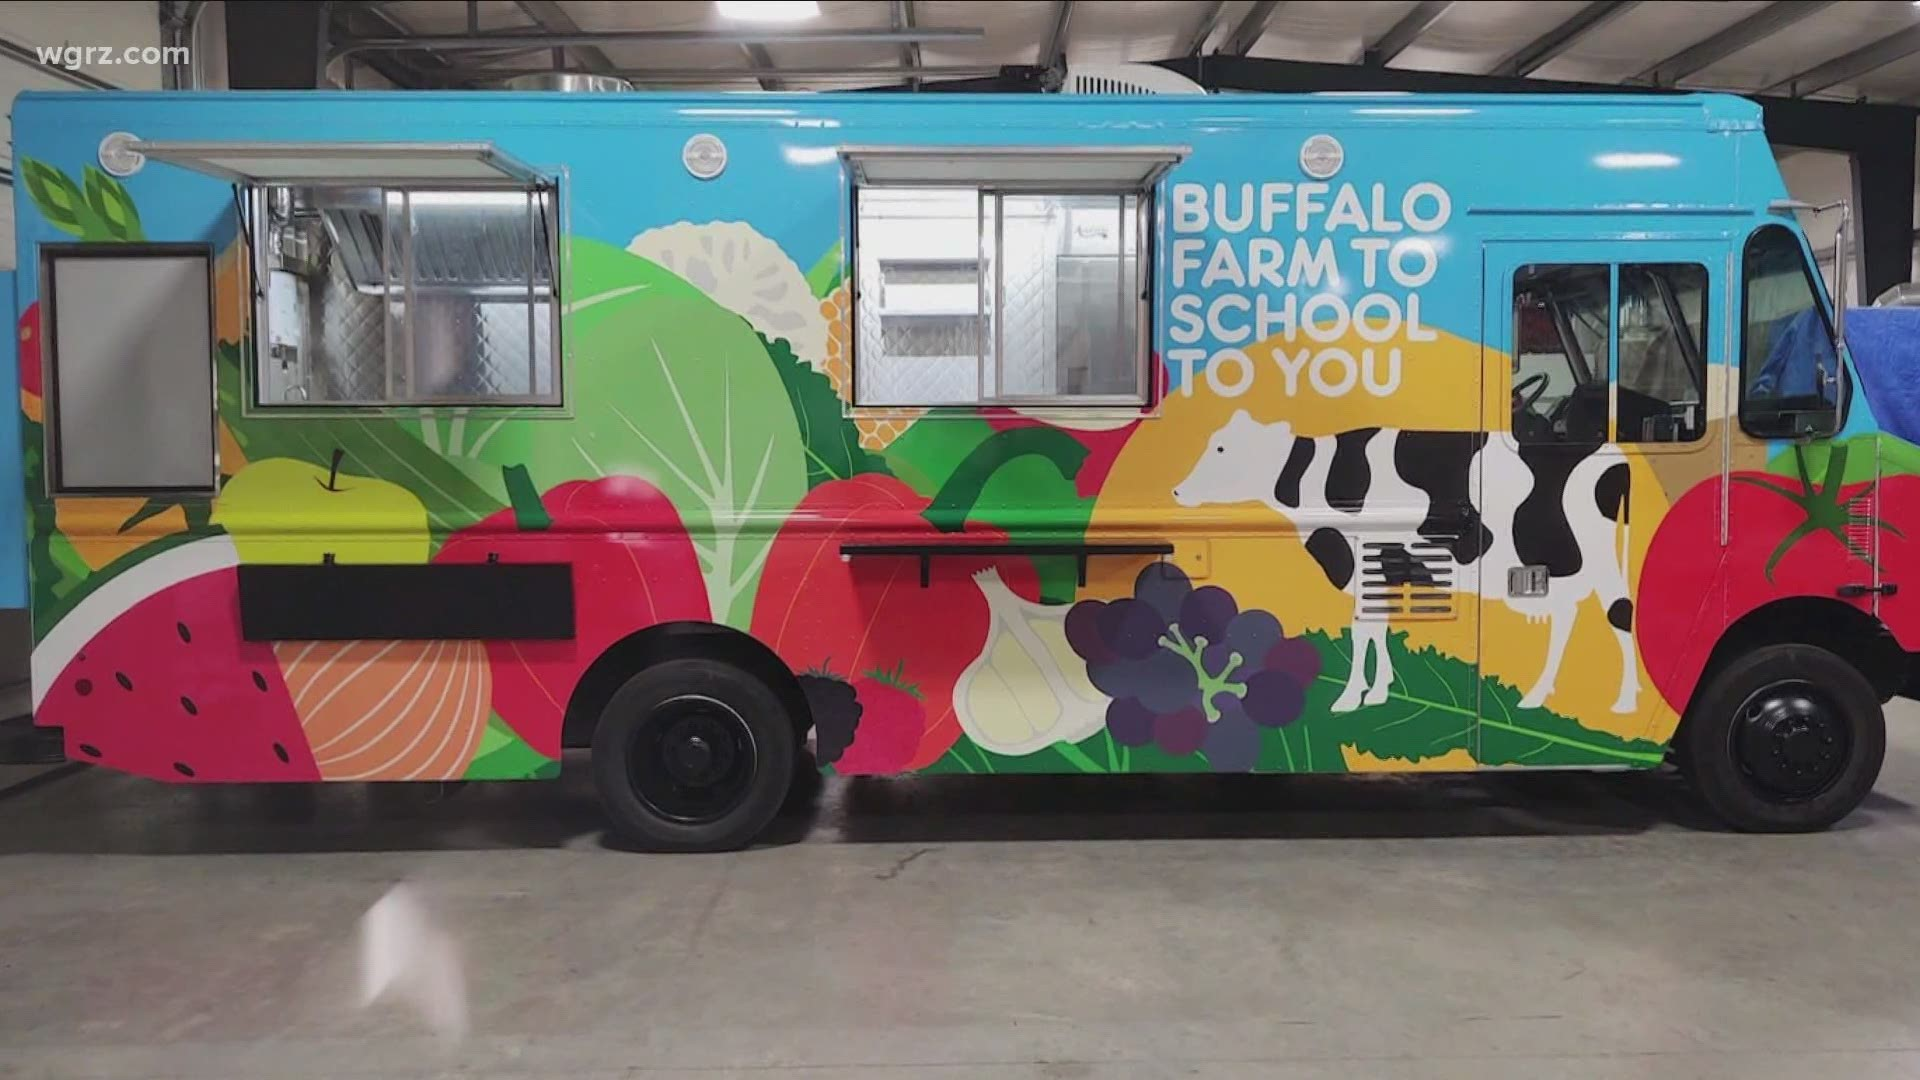 Food truck will serve locally-sourced lunches at Buffalo Public Schools